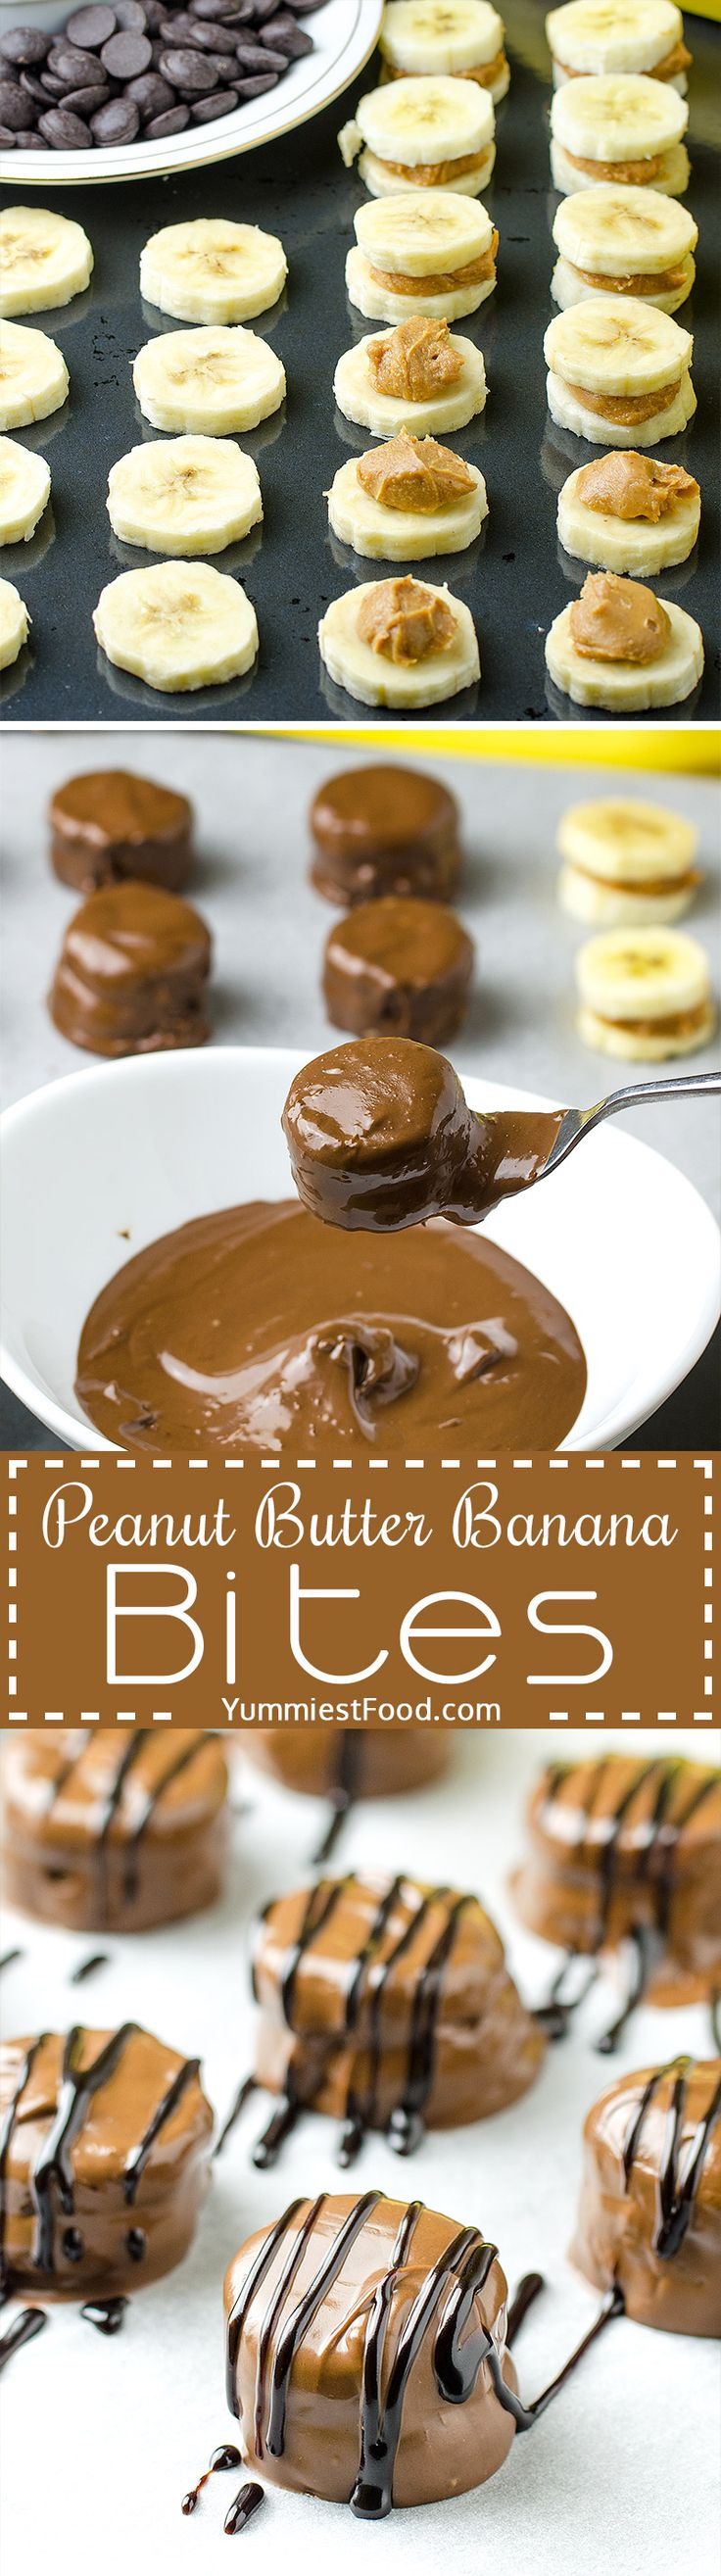 HEALTHY PEANUT BUTTER BANANA BITES - the best combination of peanut butter, chocolate and banana! Healthy, easy and quick to make! These Healthy Peanut Butter Banana Bites are so delicious and you need just three ingredients to make them!